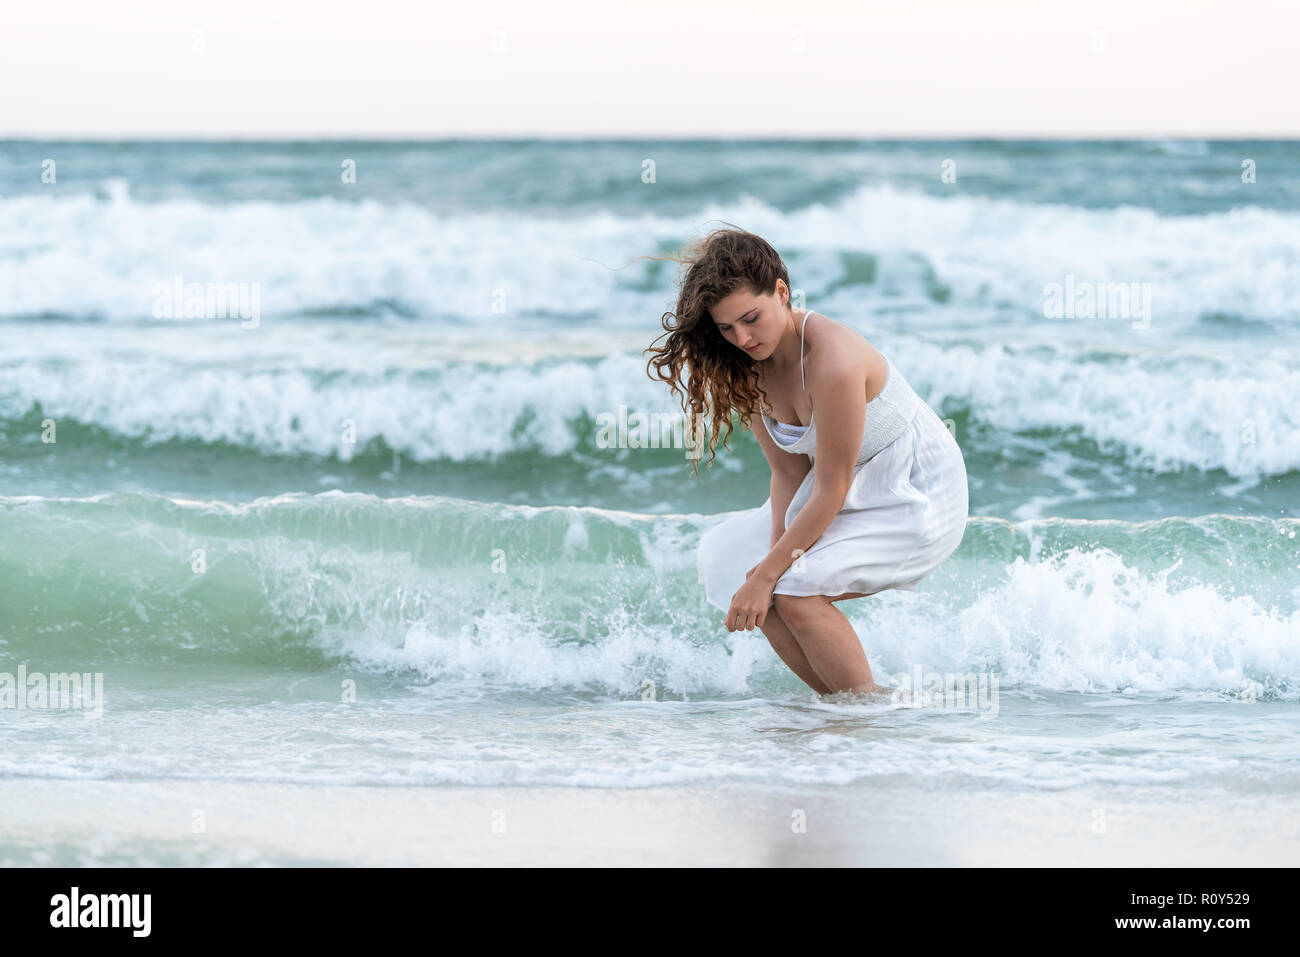 Young woman sitting squatting in white dress on beach sunset in Florida panhandle with wind, ocean waves crashing legs, tan skin, looking down - Stock Image